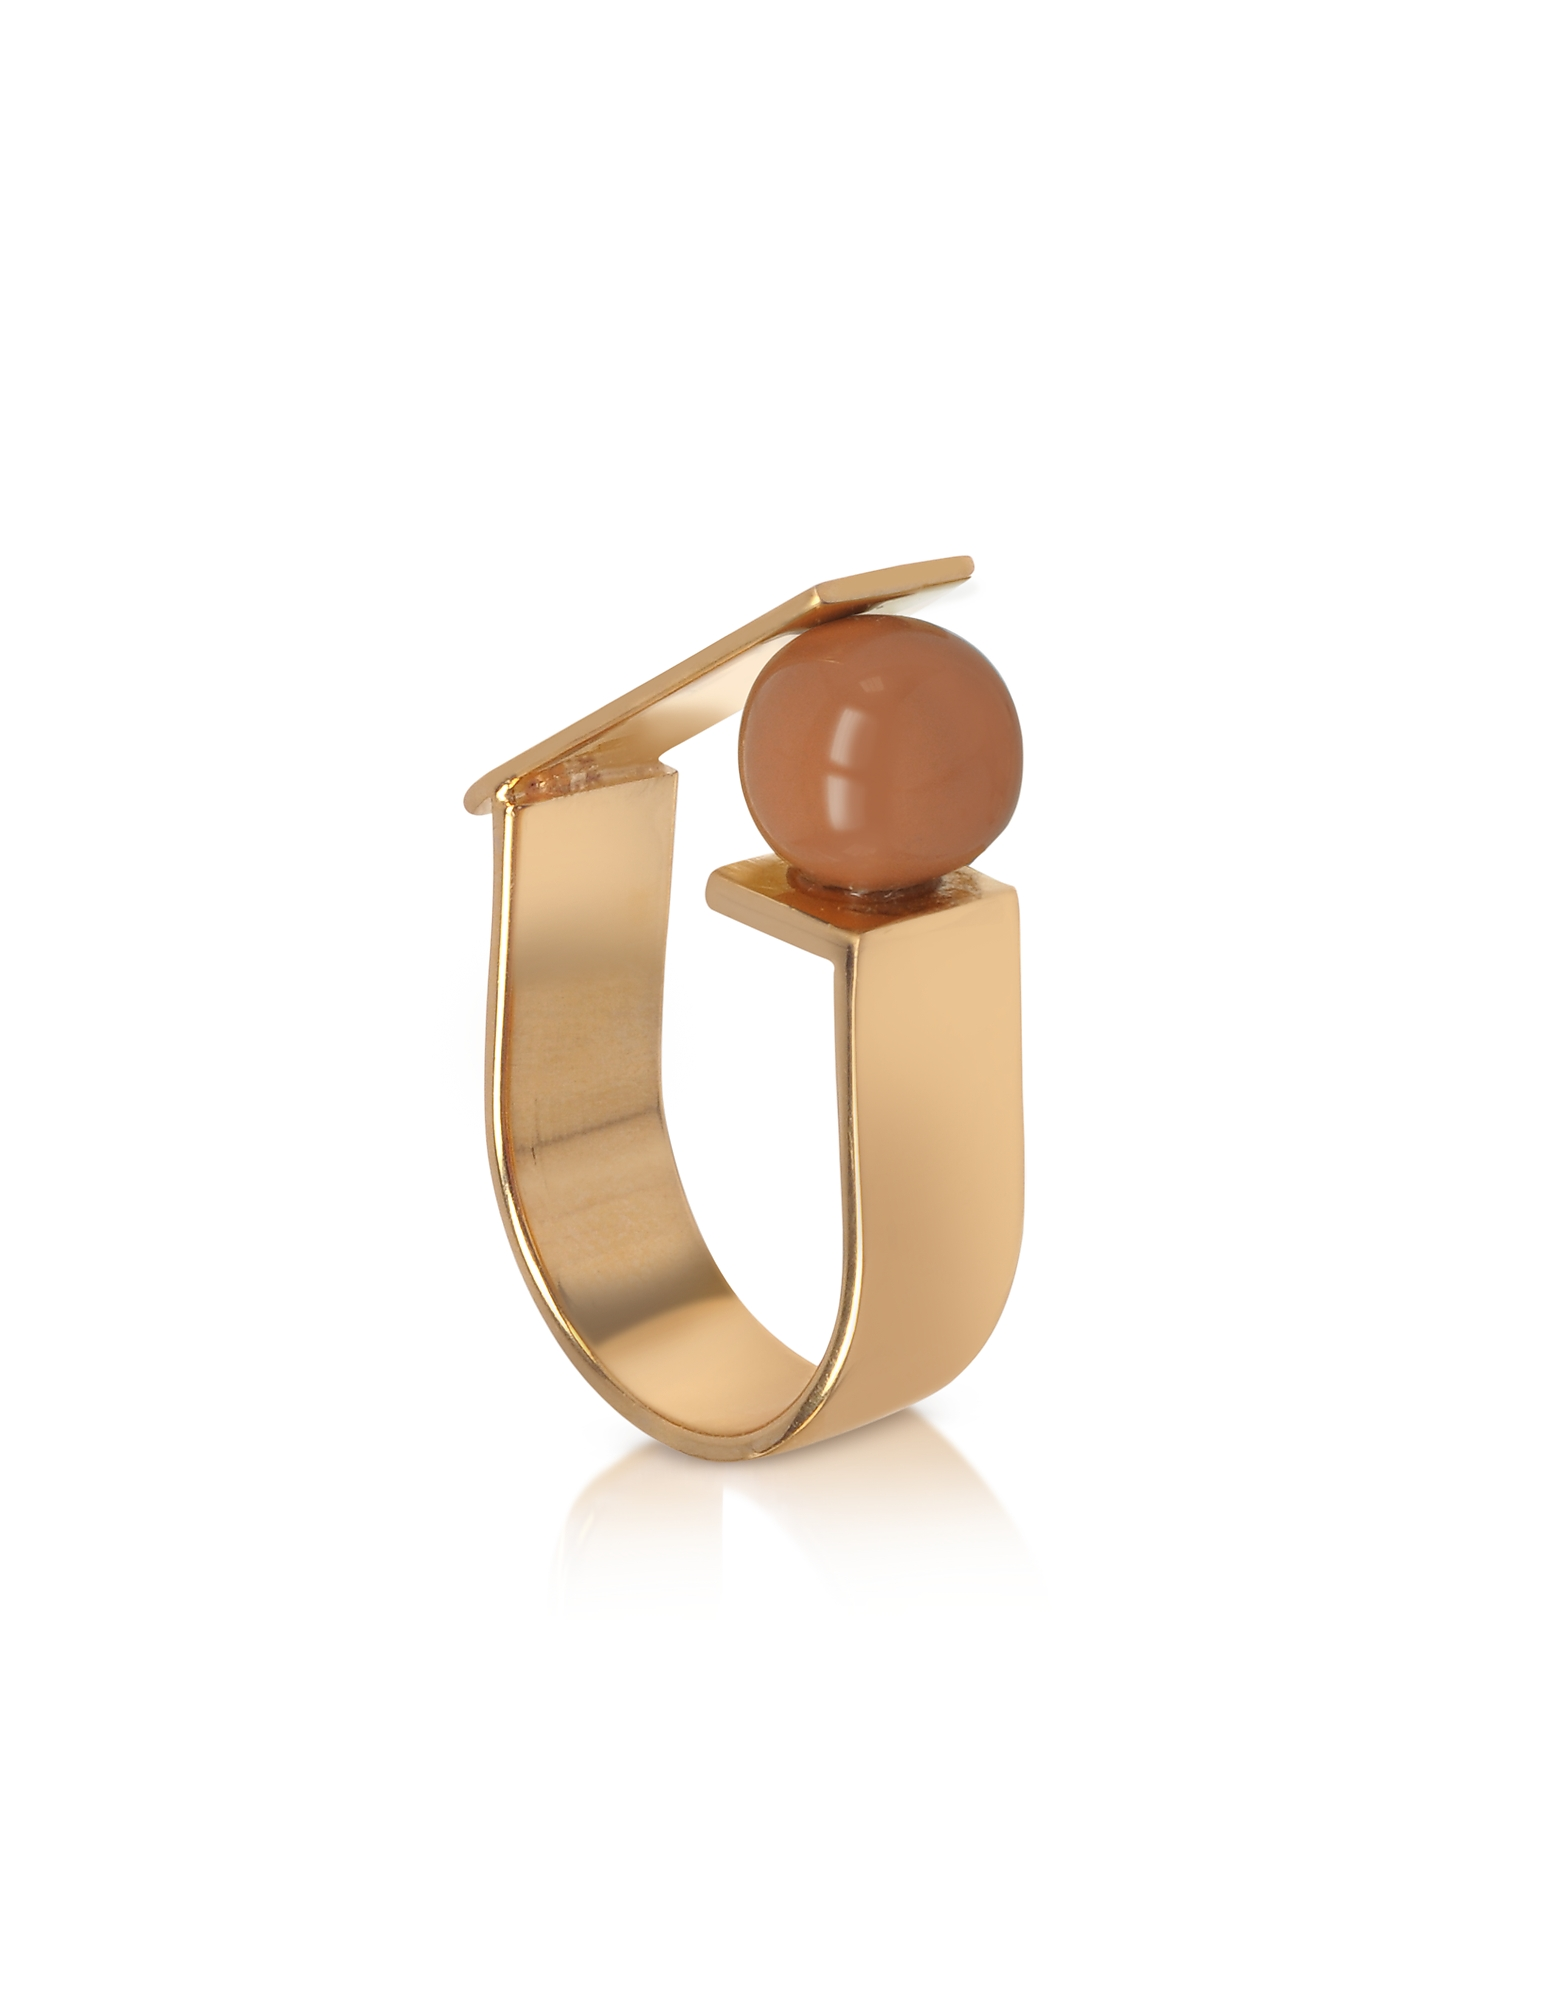 Egotique Rings, Arlequin Golden Brass Ring w/Nude Glass Pearl